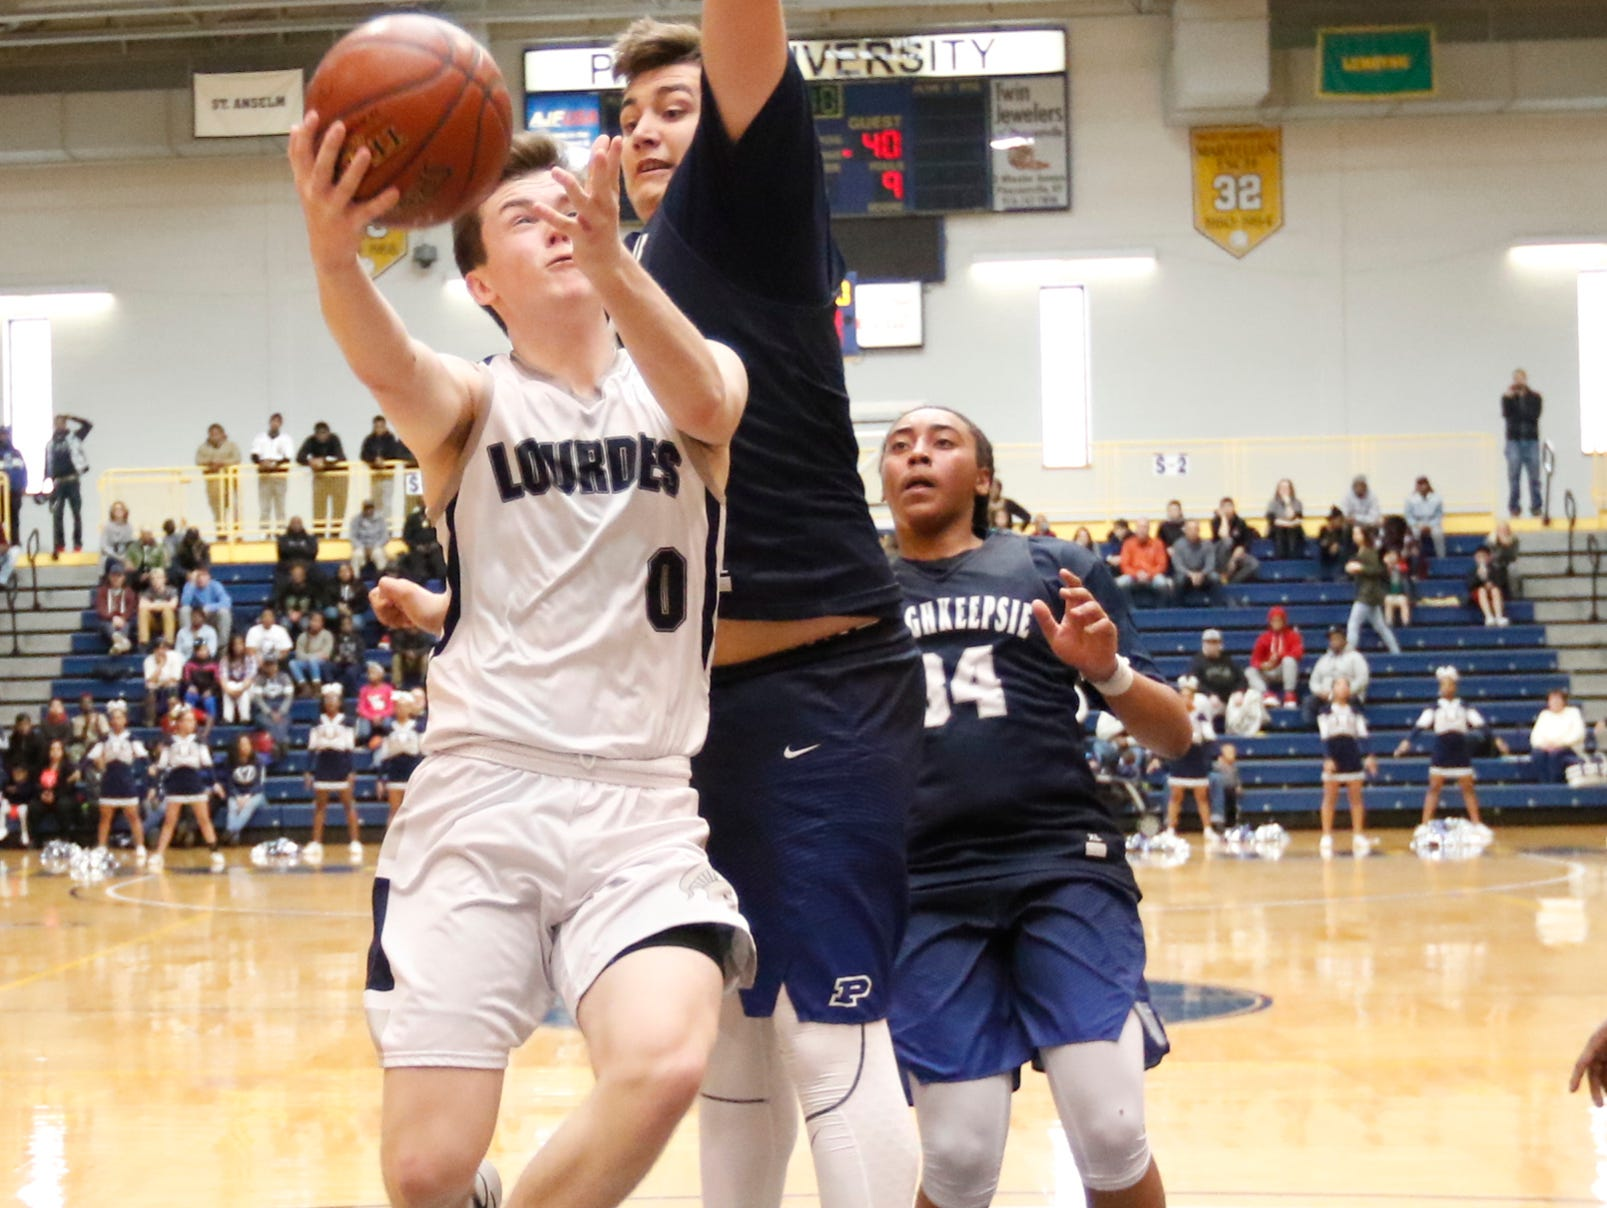 Our Lady of Lourdes High School's Brady Hildebrand take s a layup against Poughkeepsie on Saturday at Pace University.